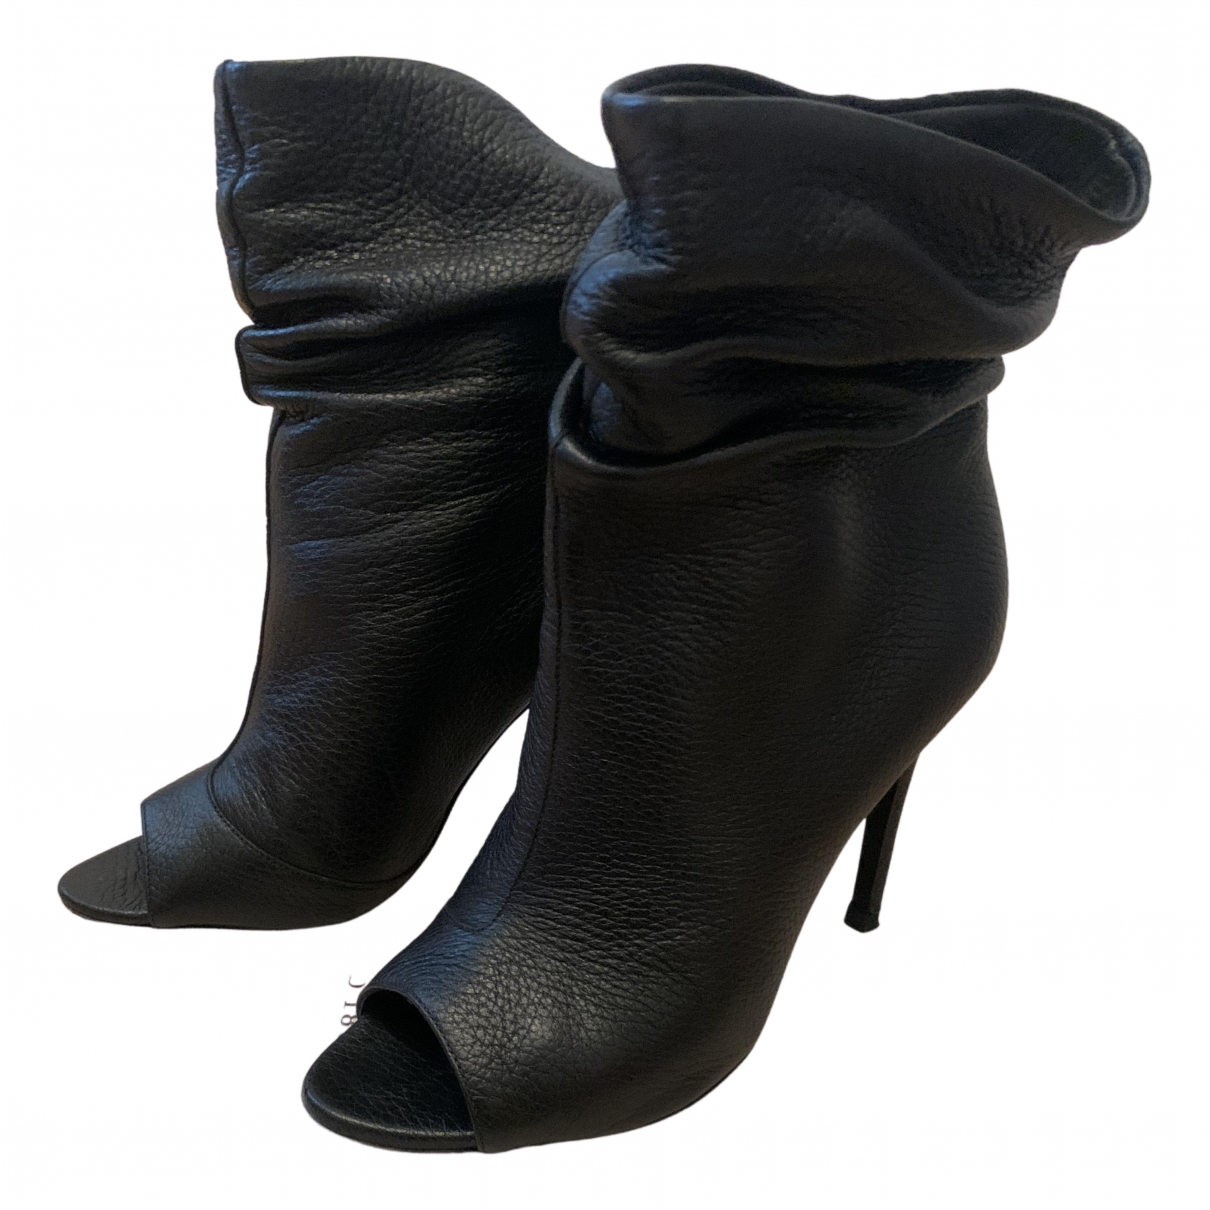 Burberry N Black Leather Ankle boots for Women 36 EU